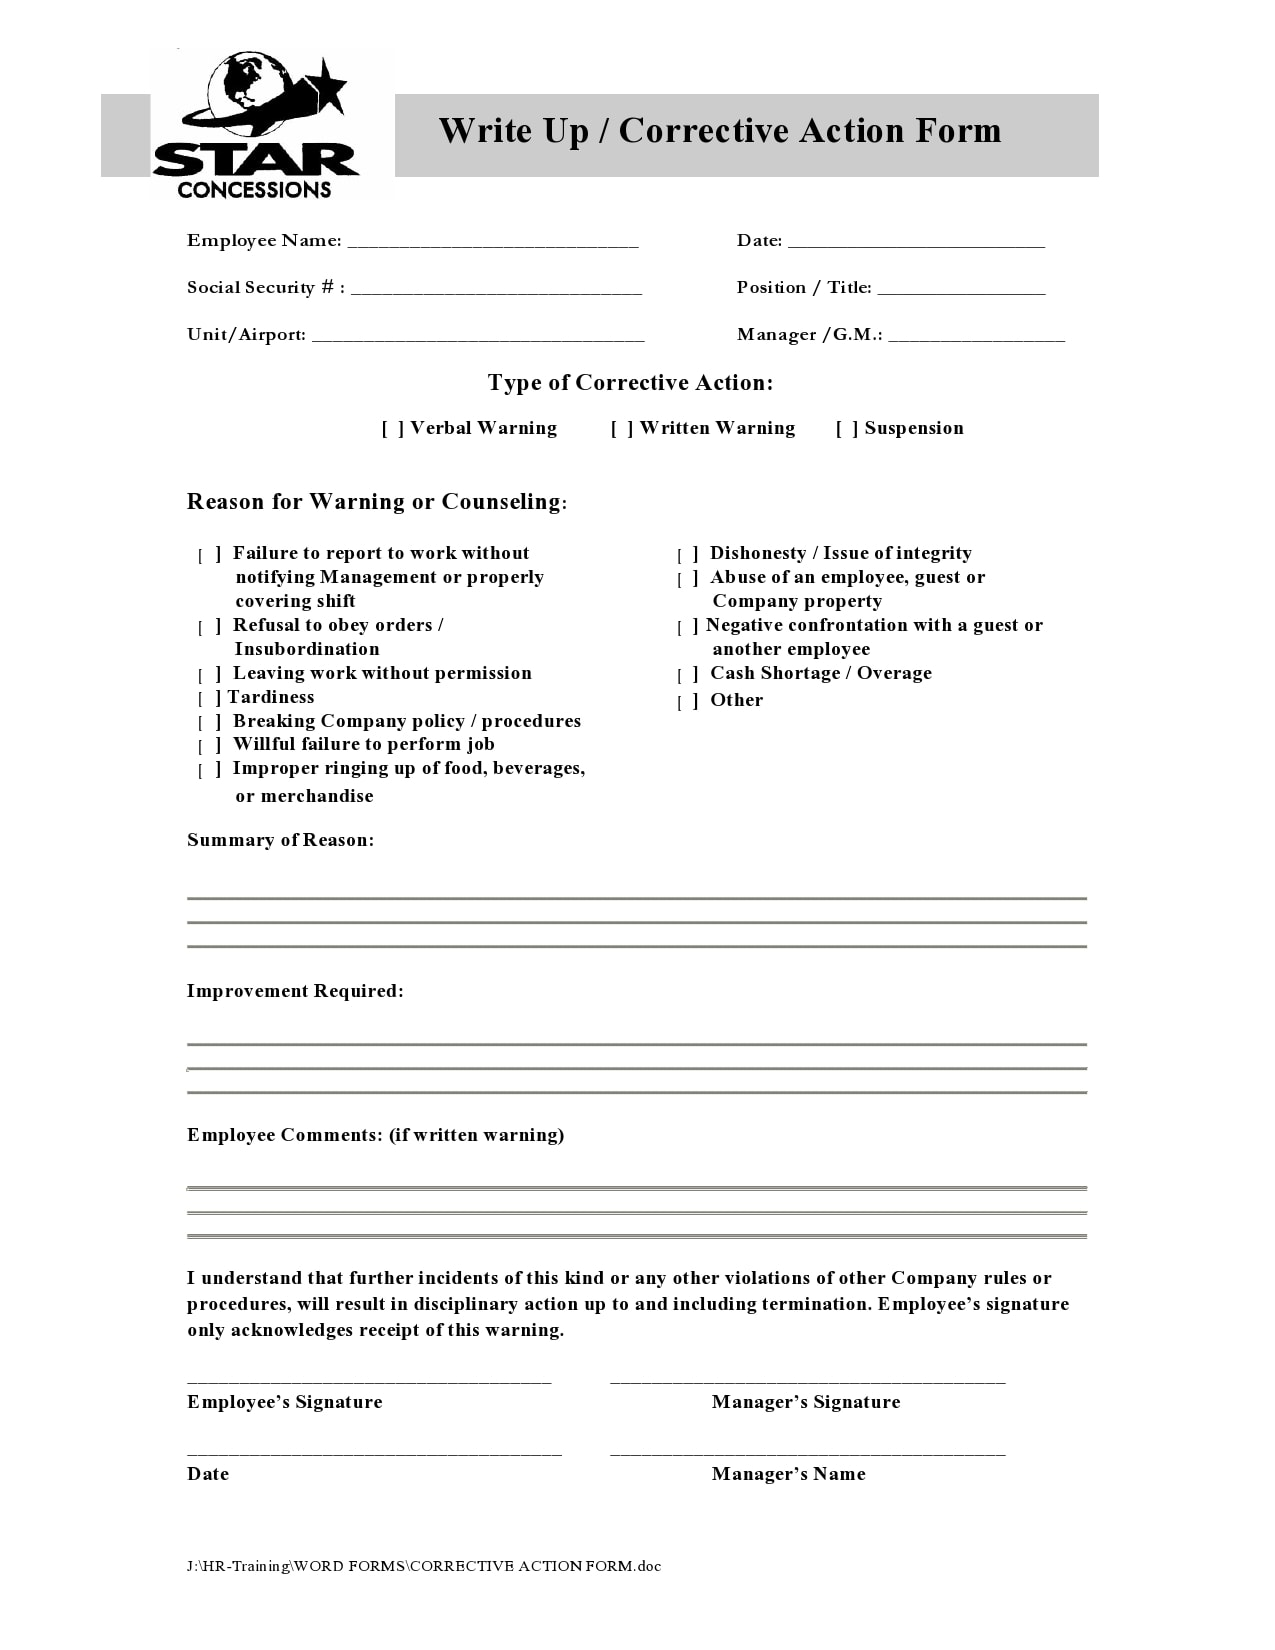 employee write up form 20